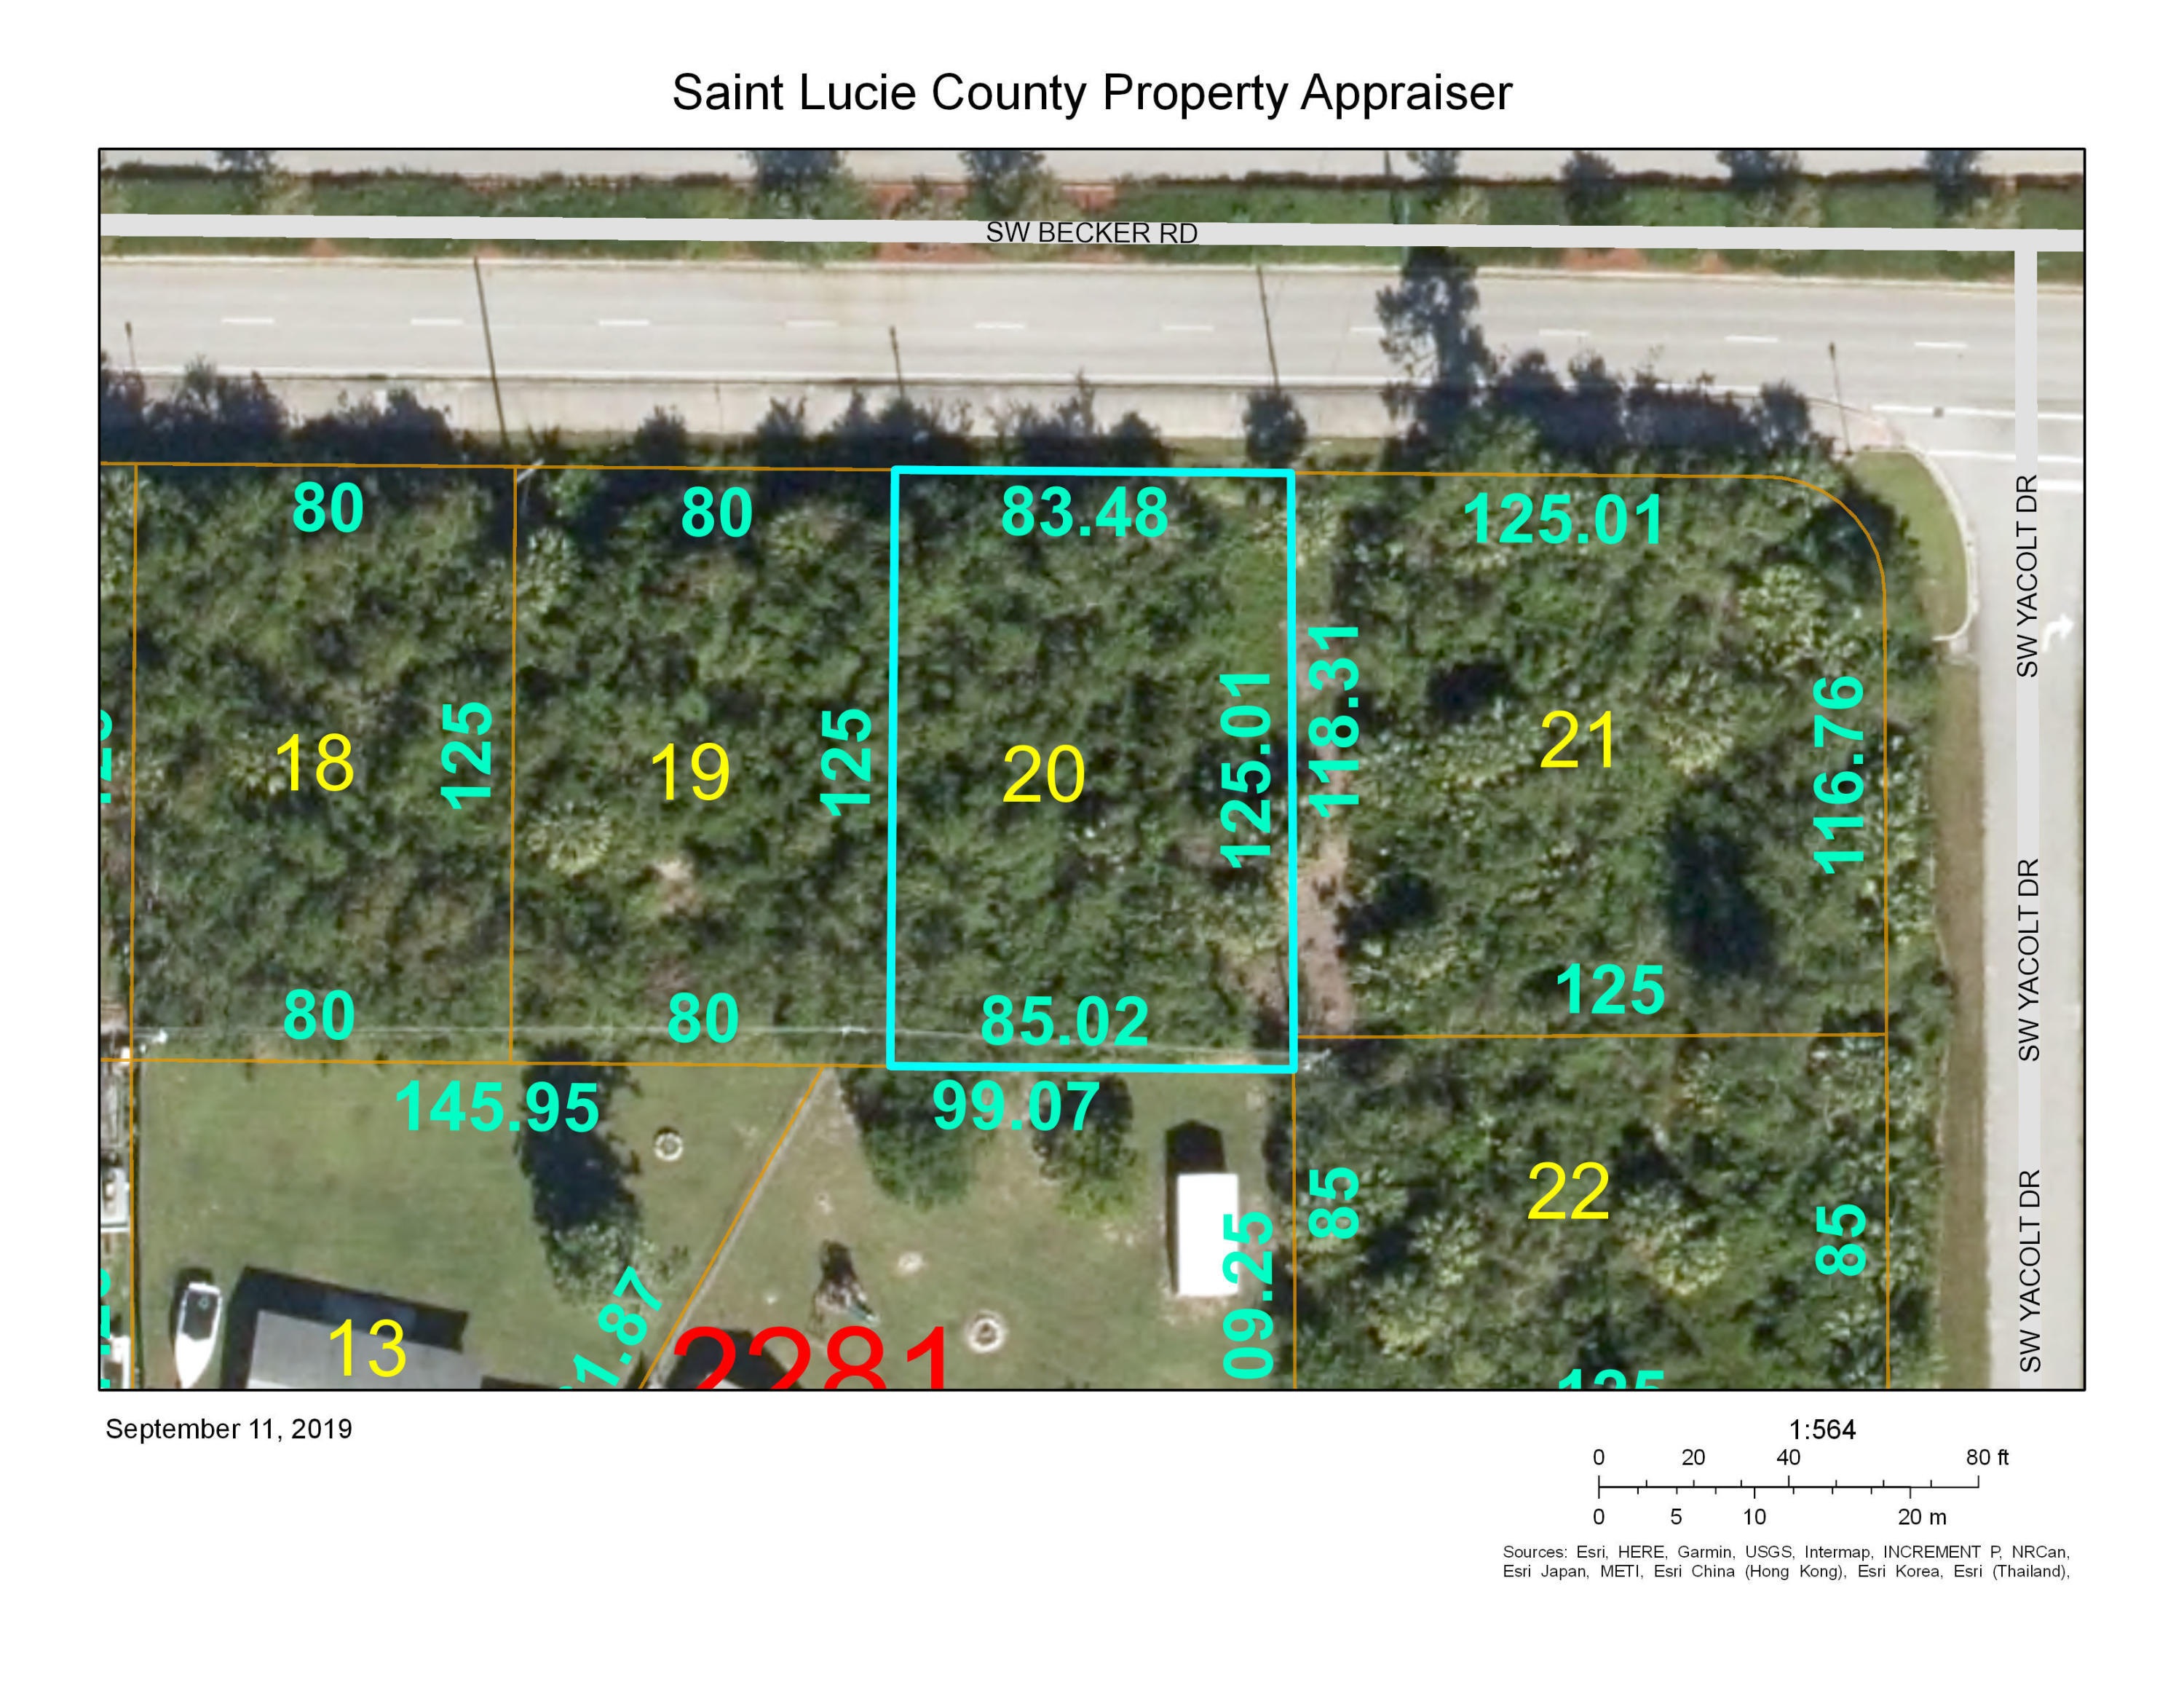 814 Sw Becker Road, Port Saint Lucie, FL 34953